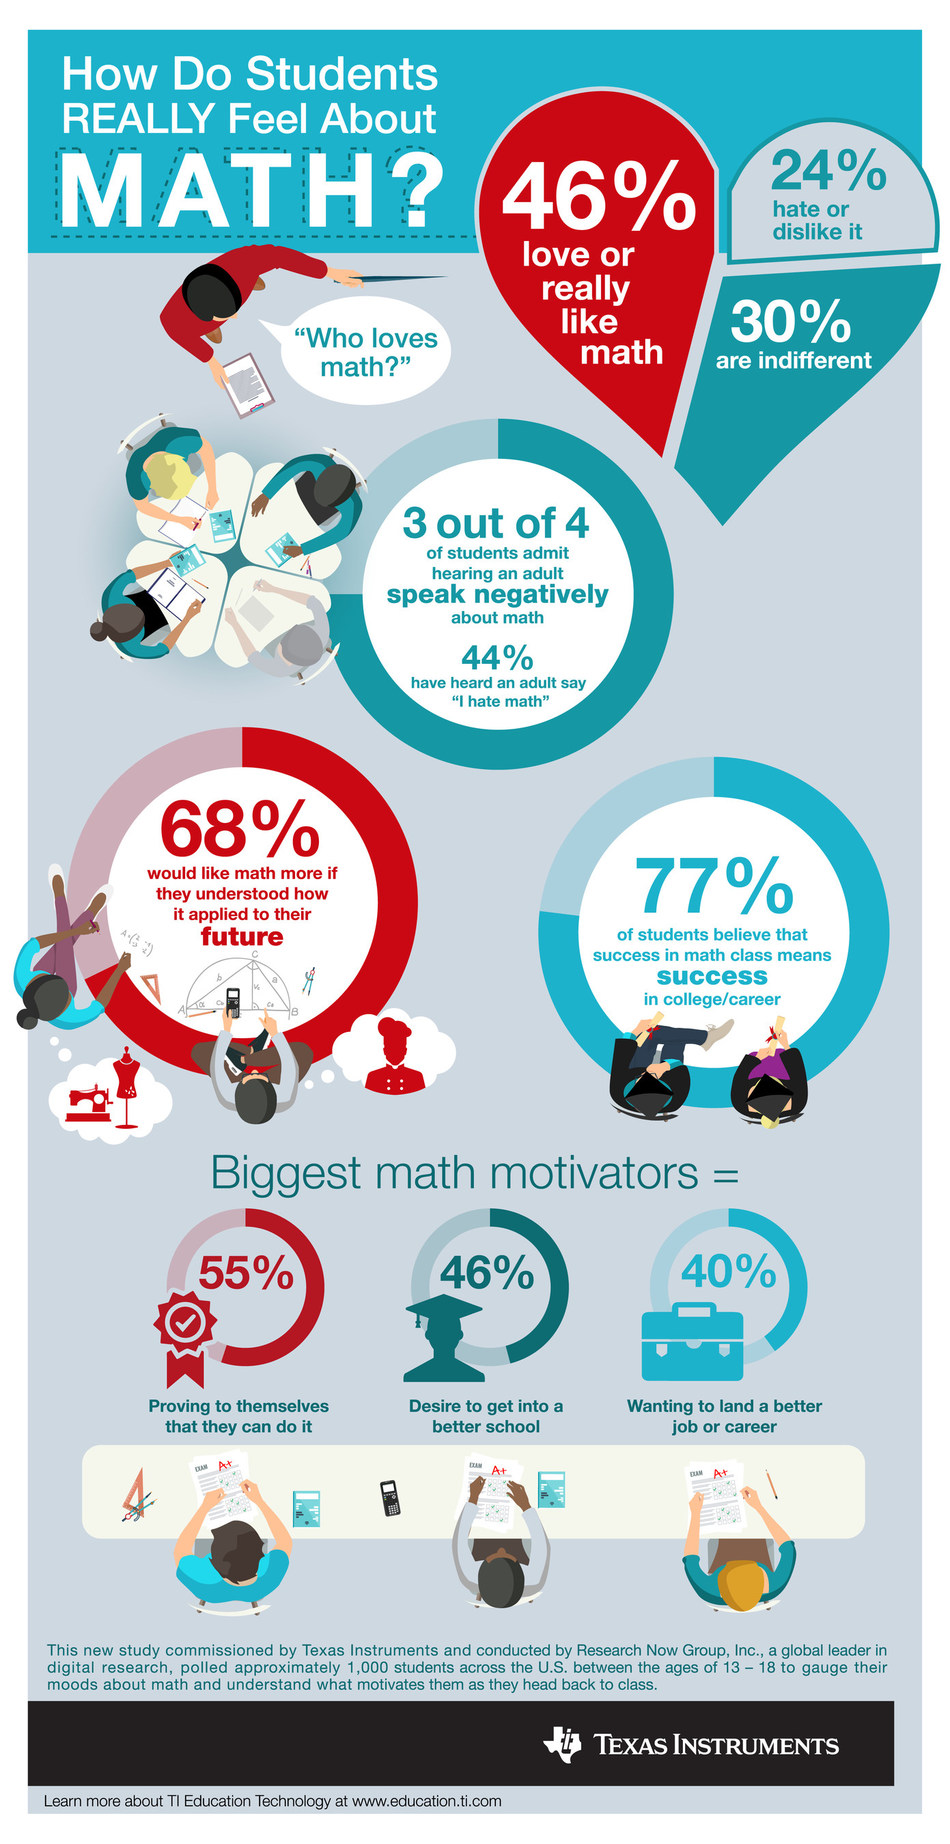 New survey from Texas Instruments reveals how students really feel about math.